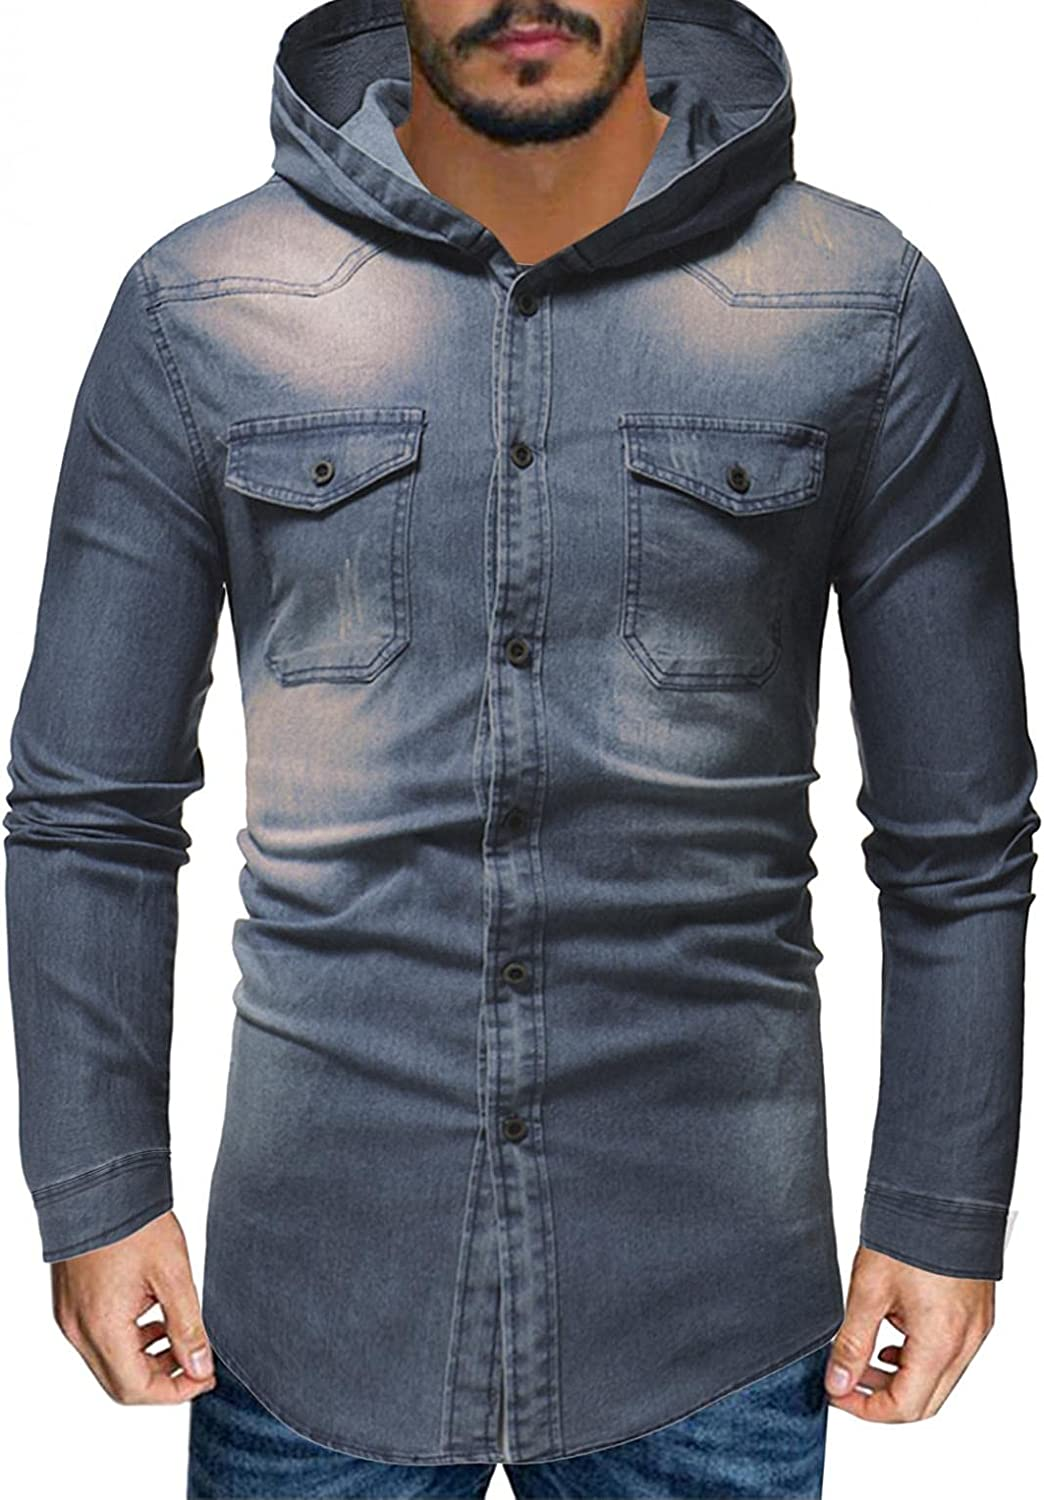 Online Superior limited product VEKDONE Jean Jacket for Mens Long Sleeve Hoodies Fashio Slim-Fit